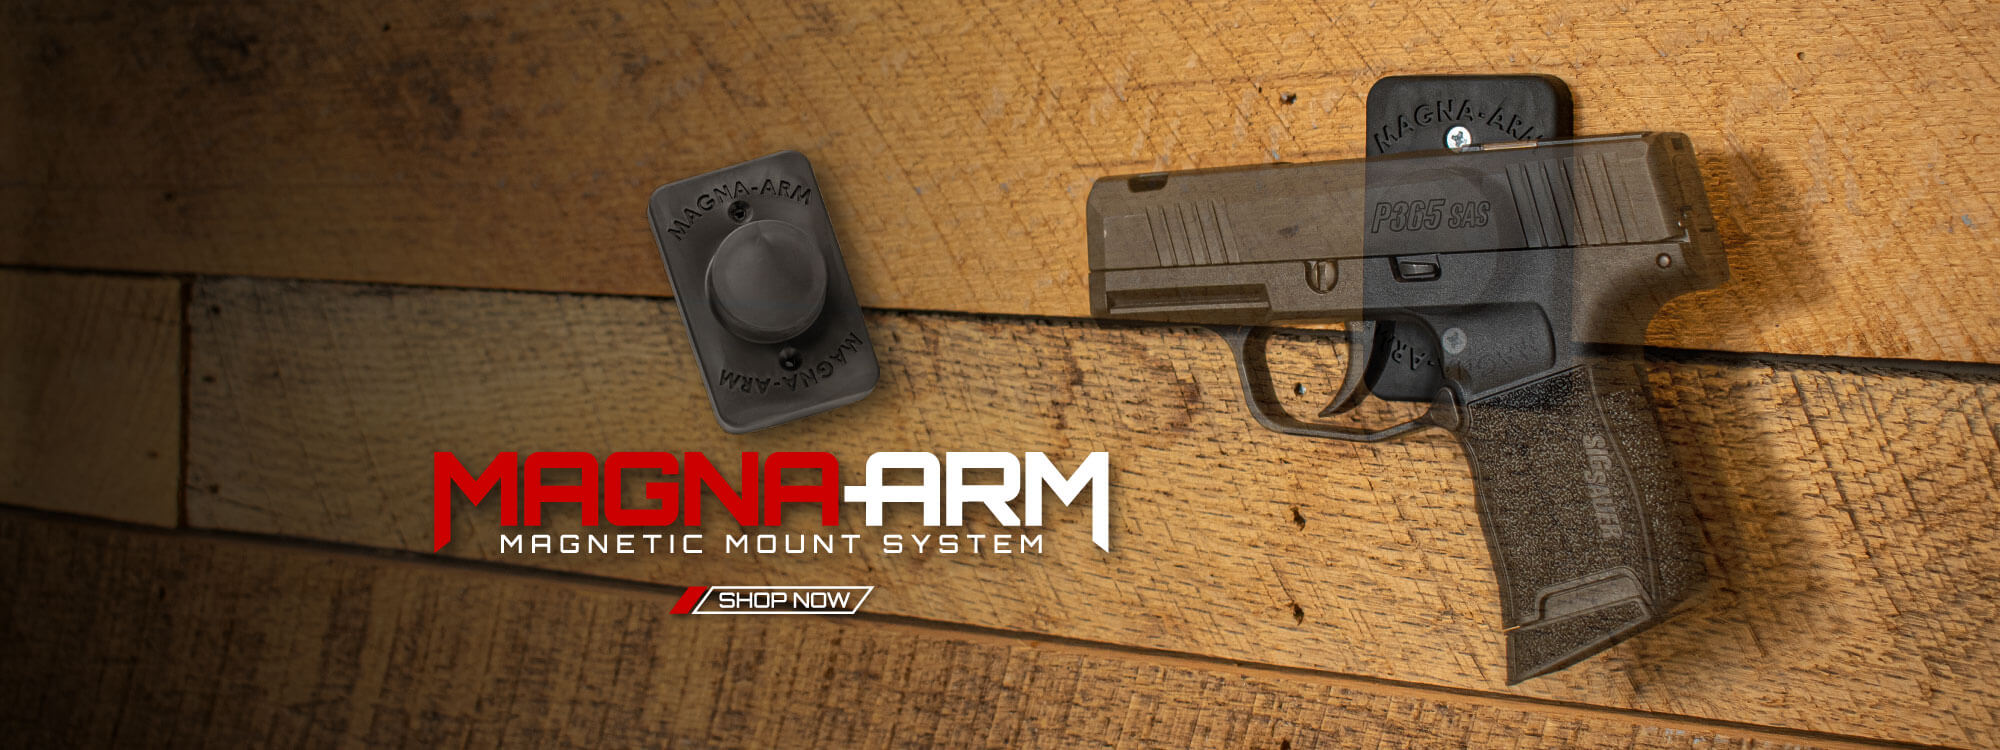 Magna-Arm Magnetic Mount System